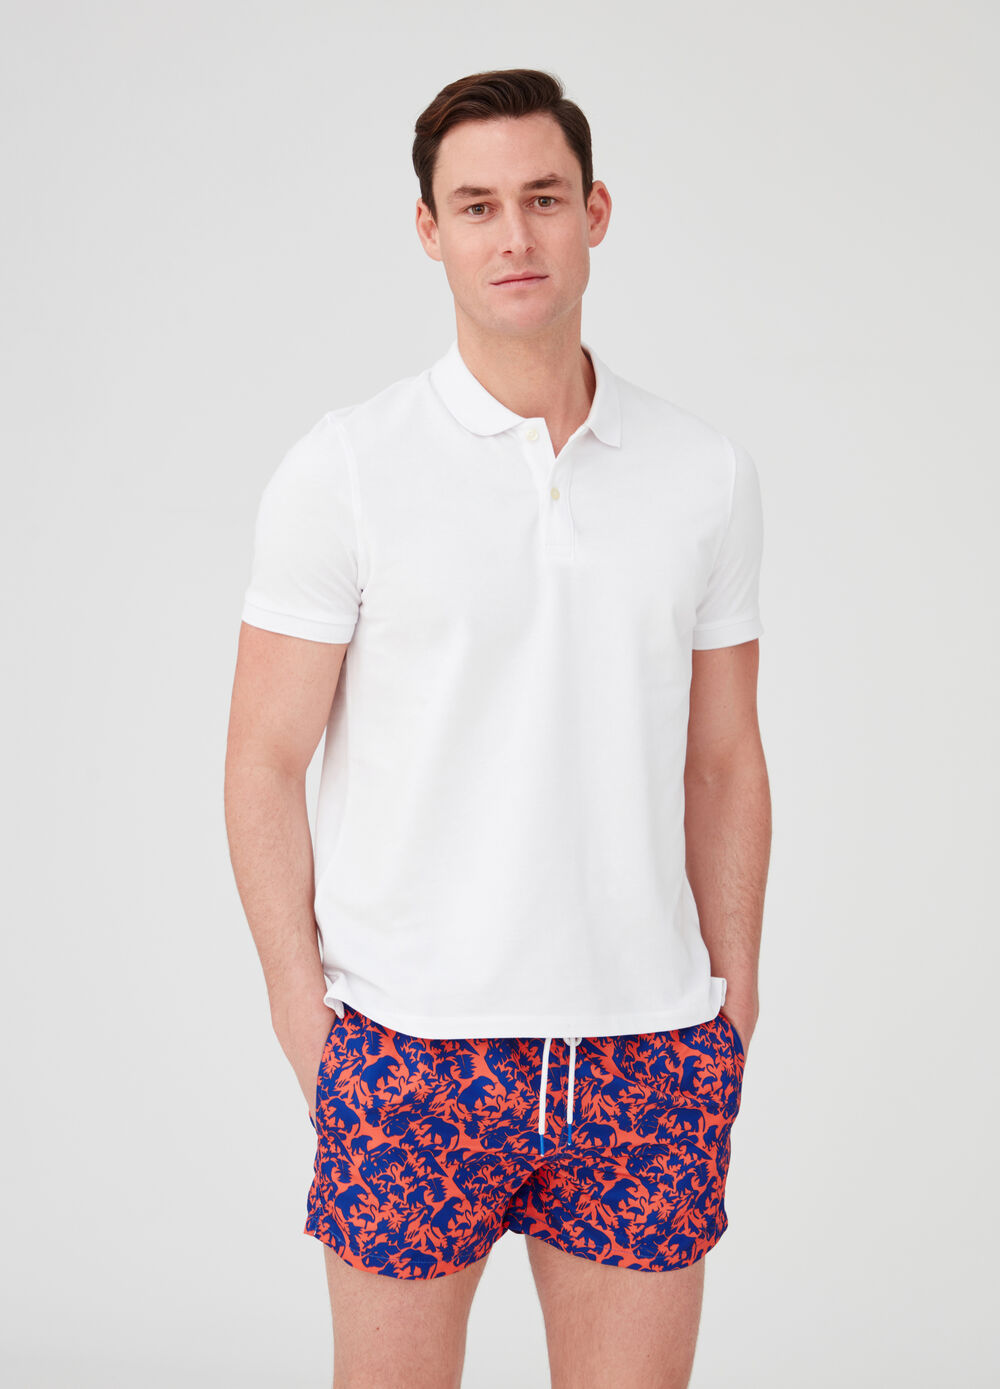 Beach shorts with drawstring and elephant pattern